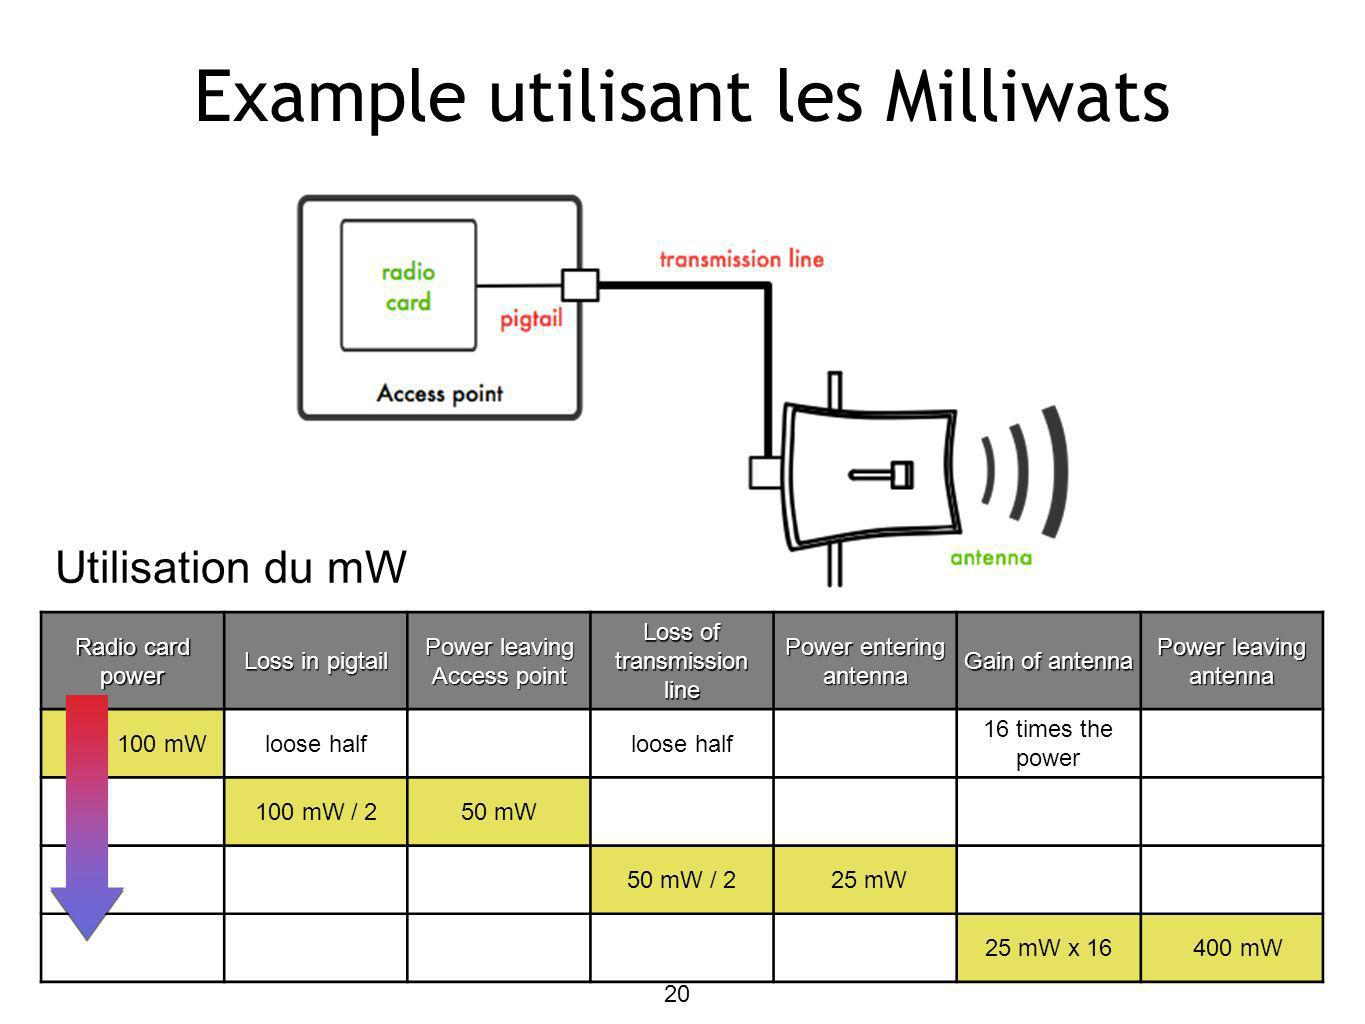 Example utilisant les Milliwats Radio card power Loss in pigtail Power leaving Access point Loss of transmission line Power entering antenna Gain of antenna Power leaving antenna 100 mWloose half 16 times the power 100 mW / 250 mW 50 mW / 2 25 mW 25 mW x 16 400 mW Utilisation du mW 20